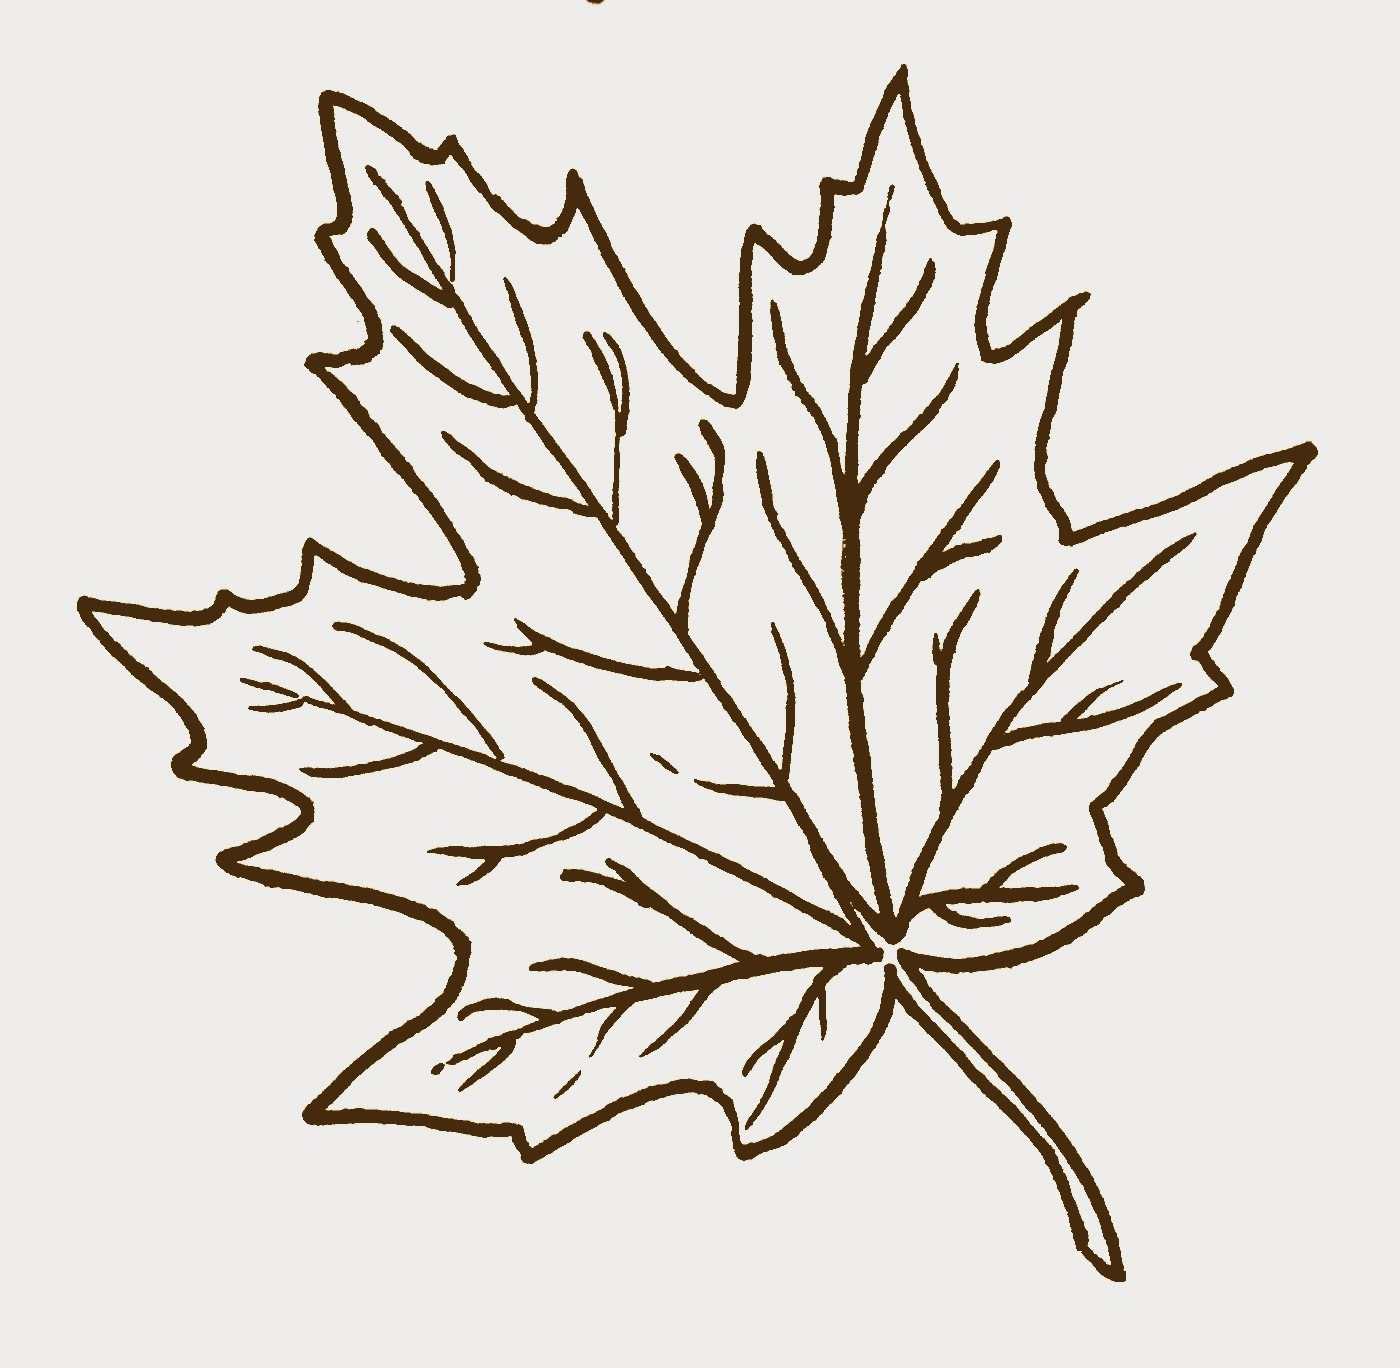 Fall leaves clip art black and white 2.